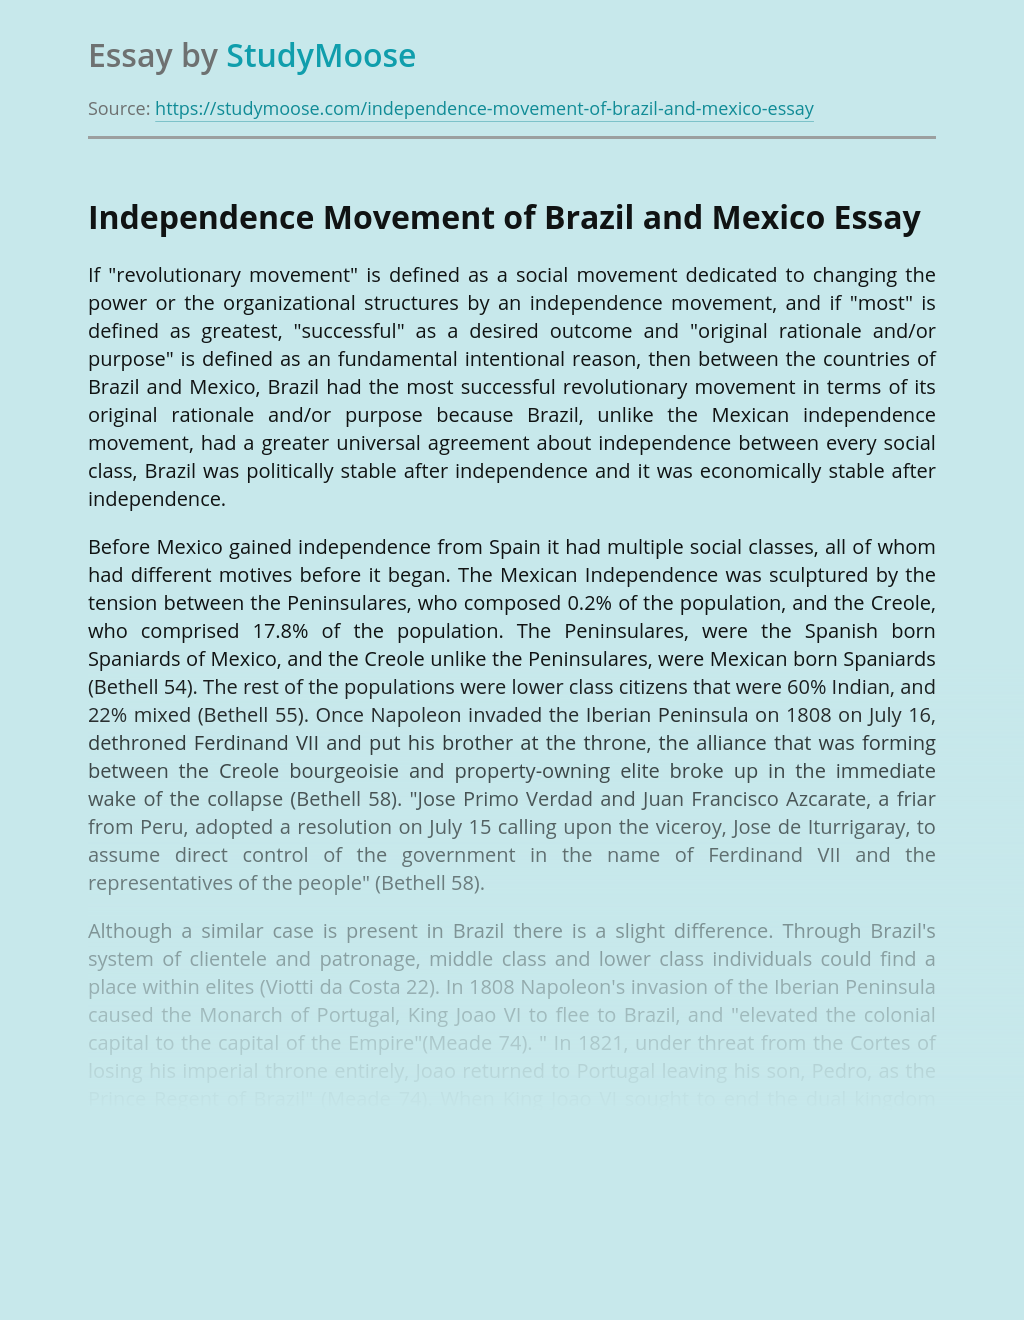 Independence Movement of Brazil and Mexico